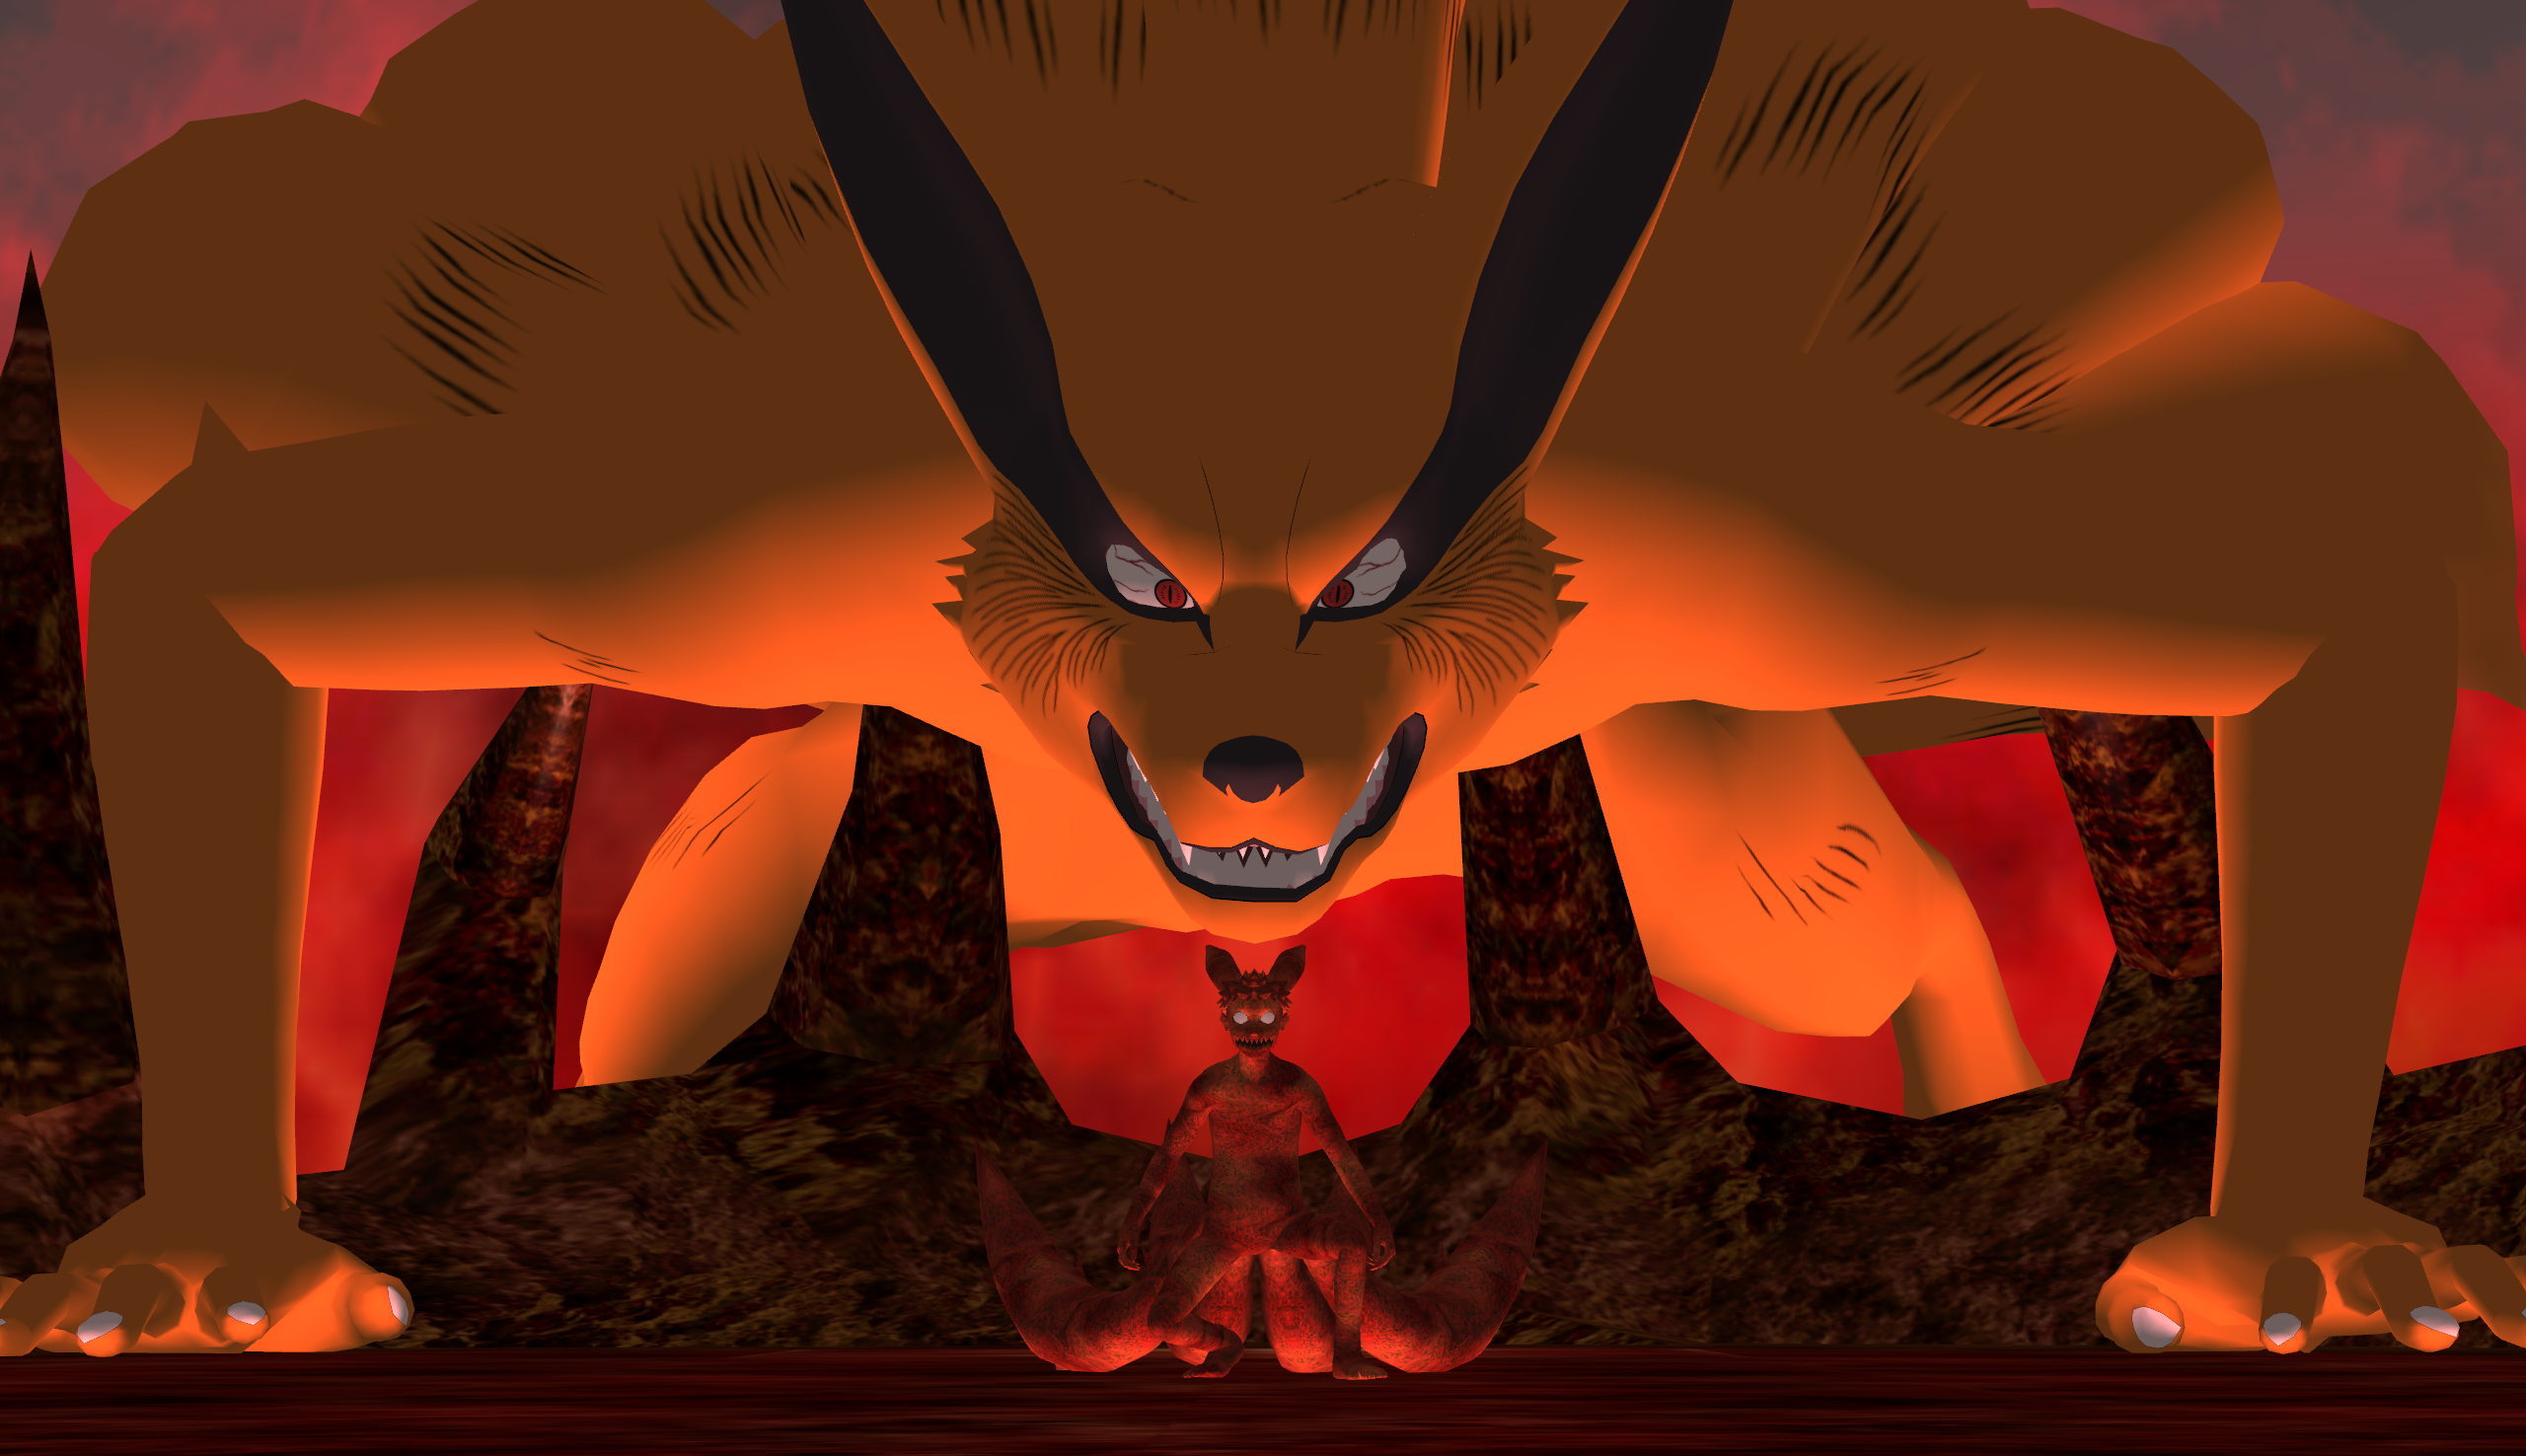 Kyuubi Kurama And Four Tailed Naruto Wallpaper By Agrael34